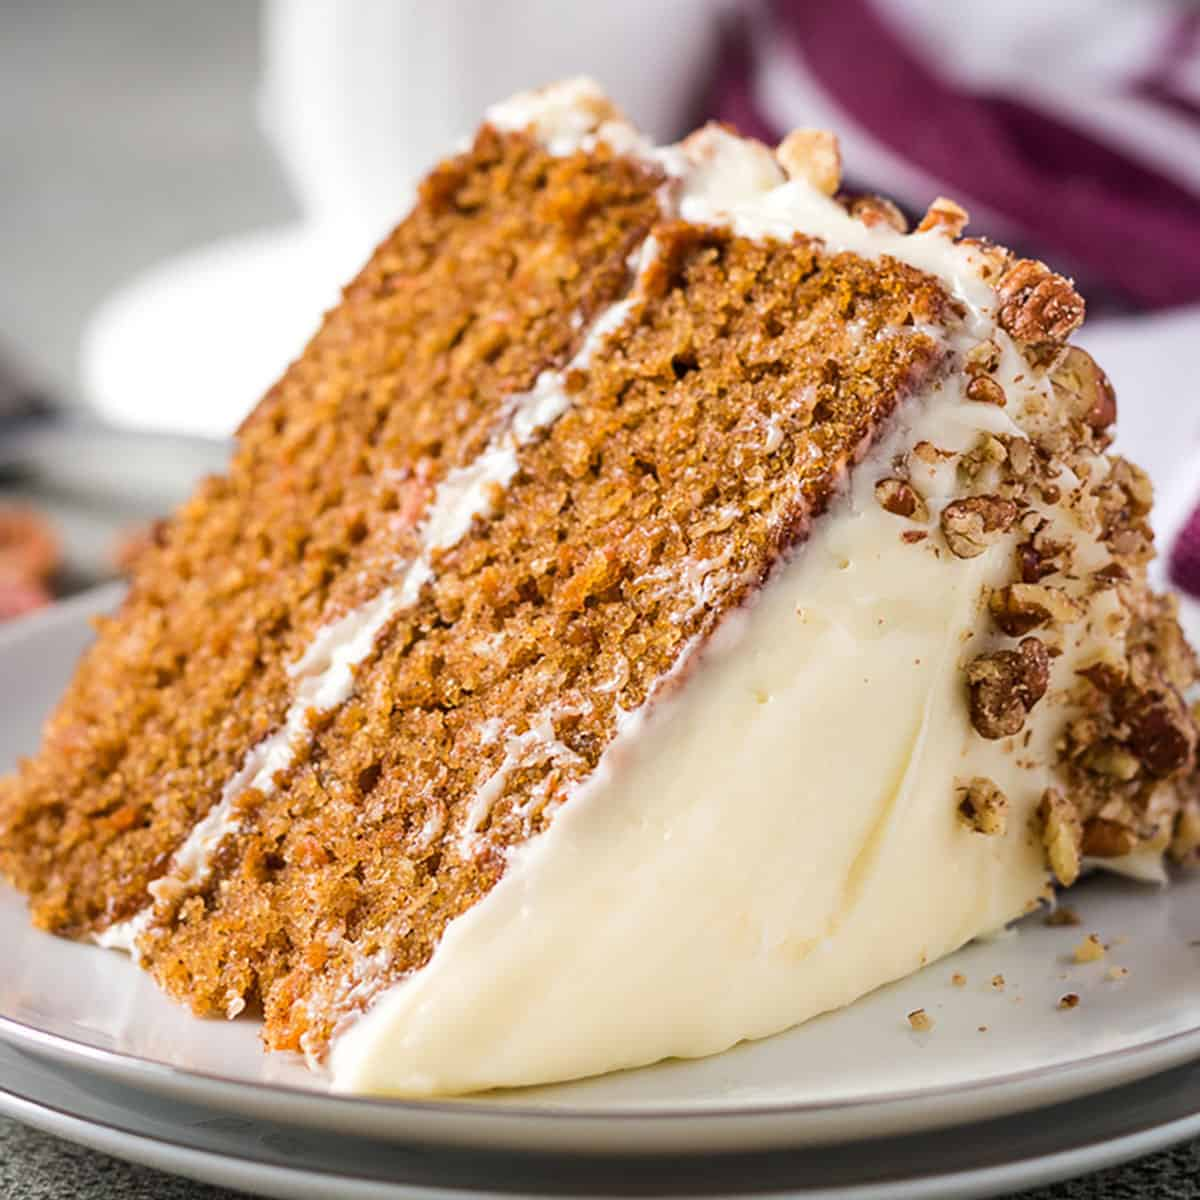 Slice of homemade carrot cake with pecans laying on its side.